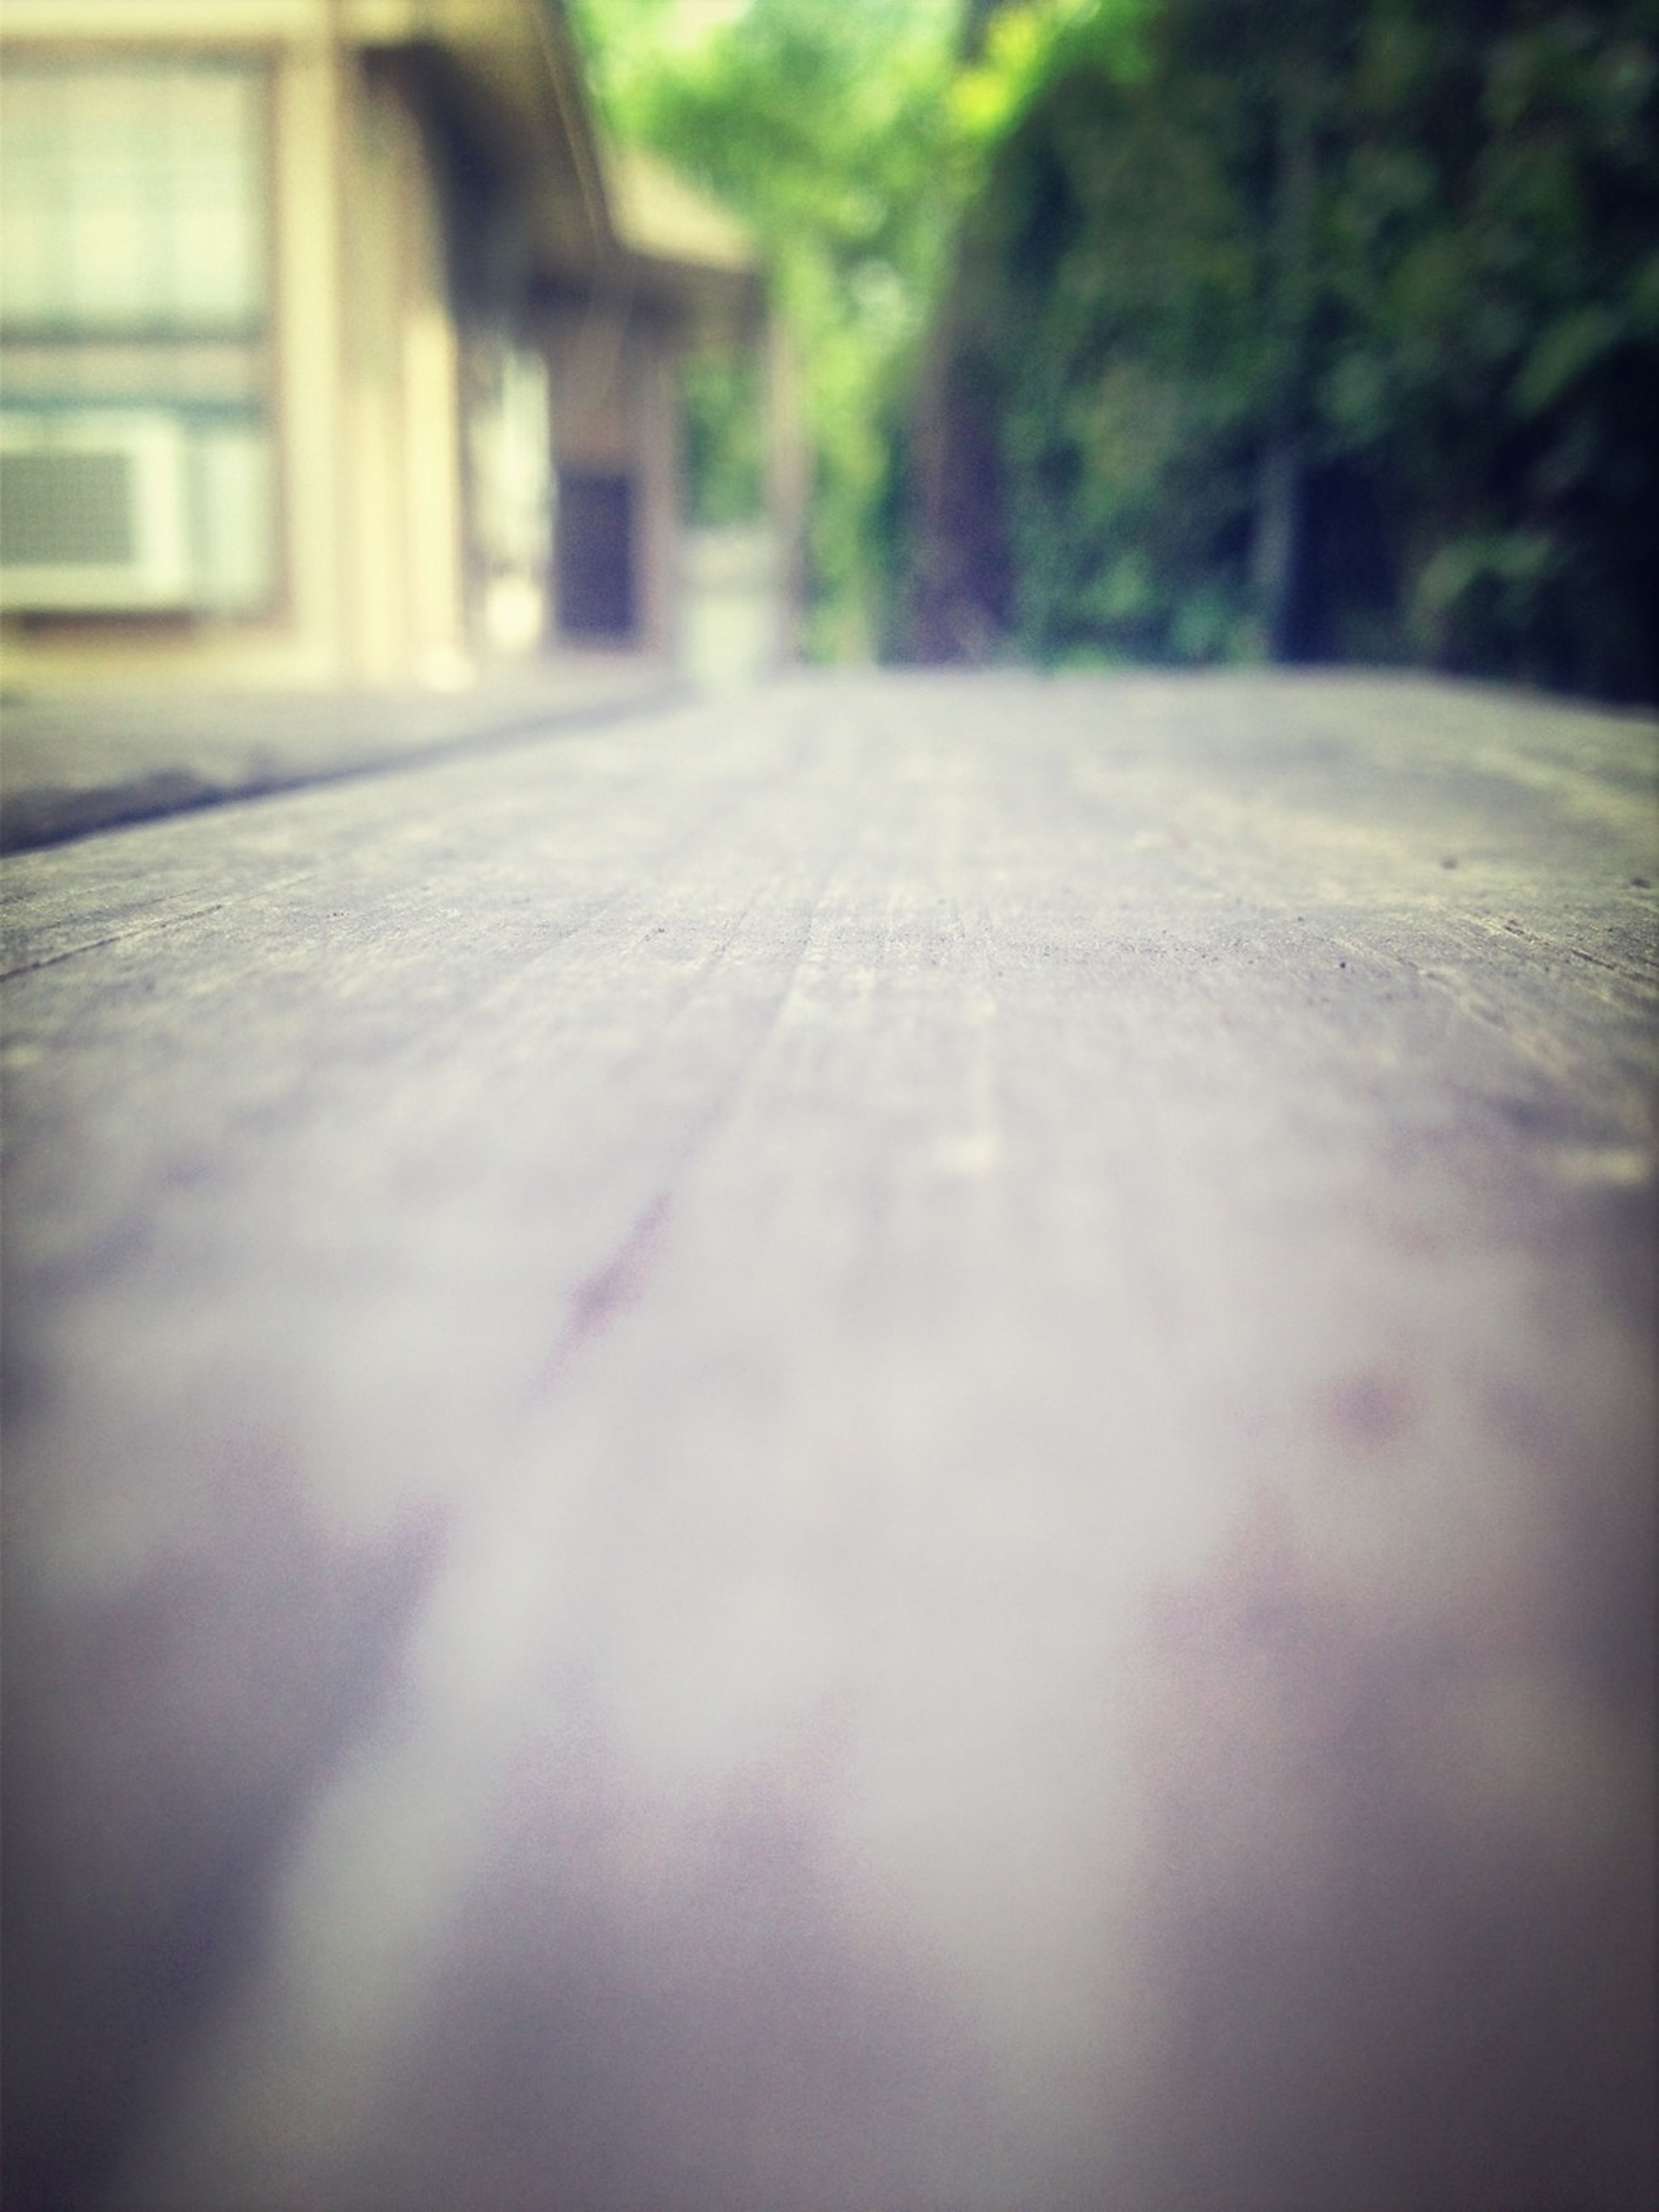 selective focus, surface level, focus on foreground, close-up, built structure, architecture, day, the way forward, no people, sunlight, outdoors, building exterior, empty, shadow, nature, street, diminishing perspective, footpath, wood - material, textured